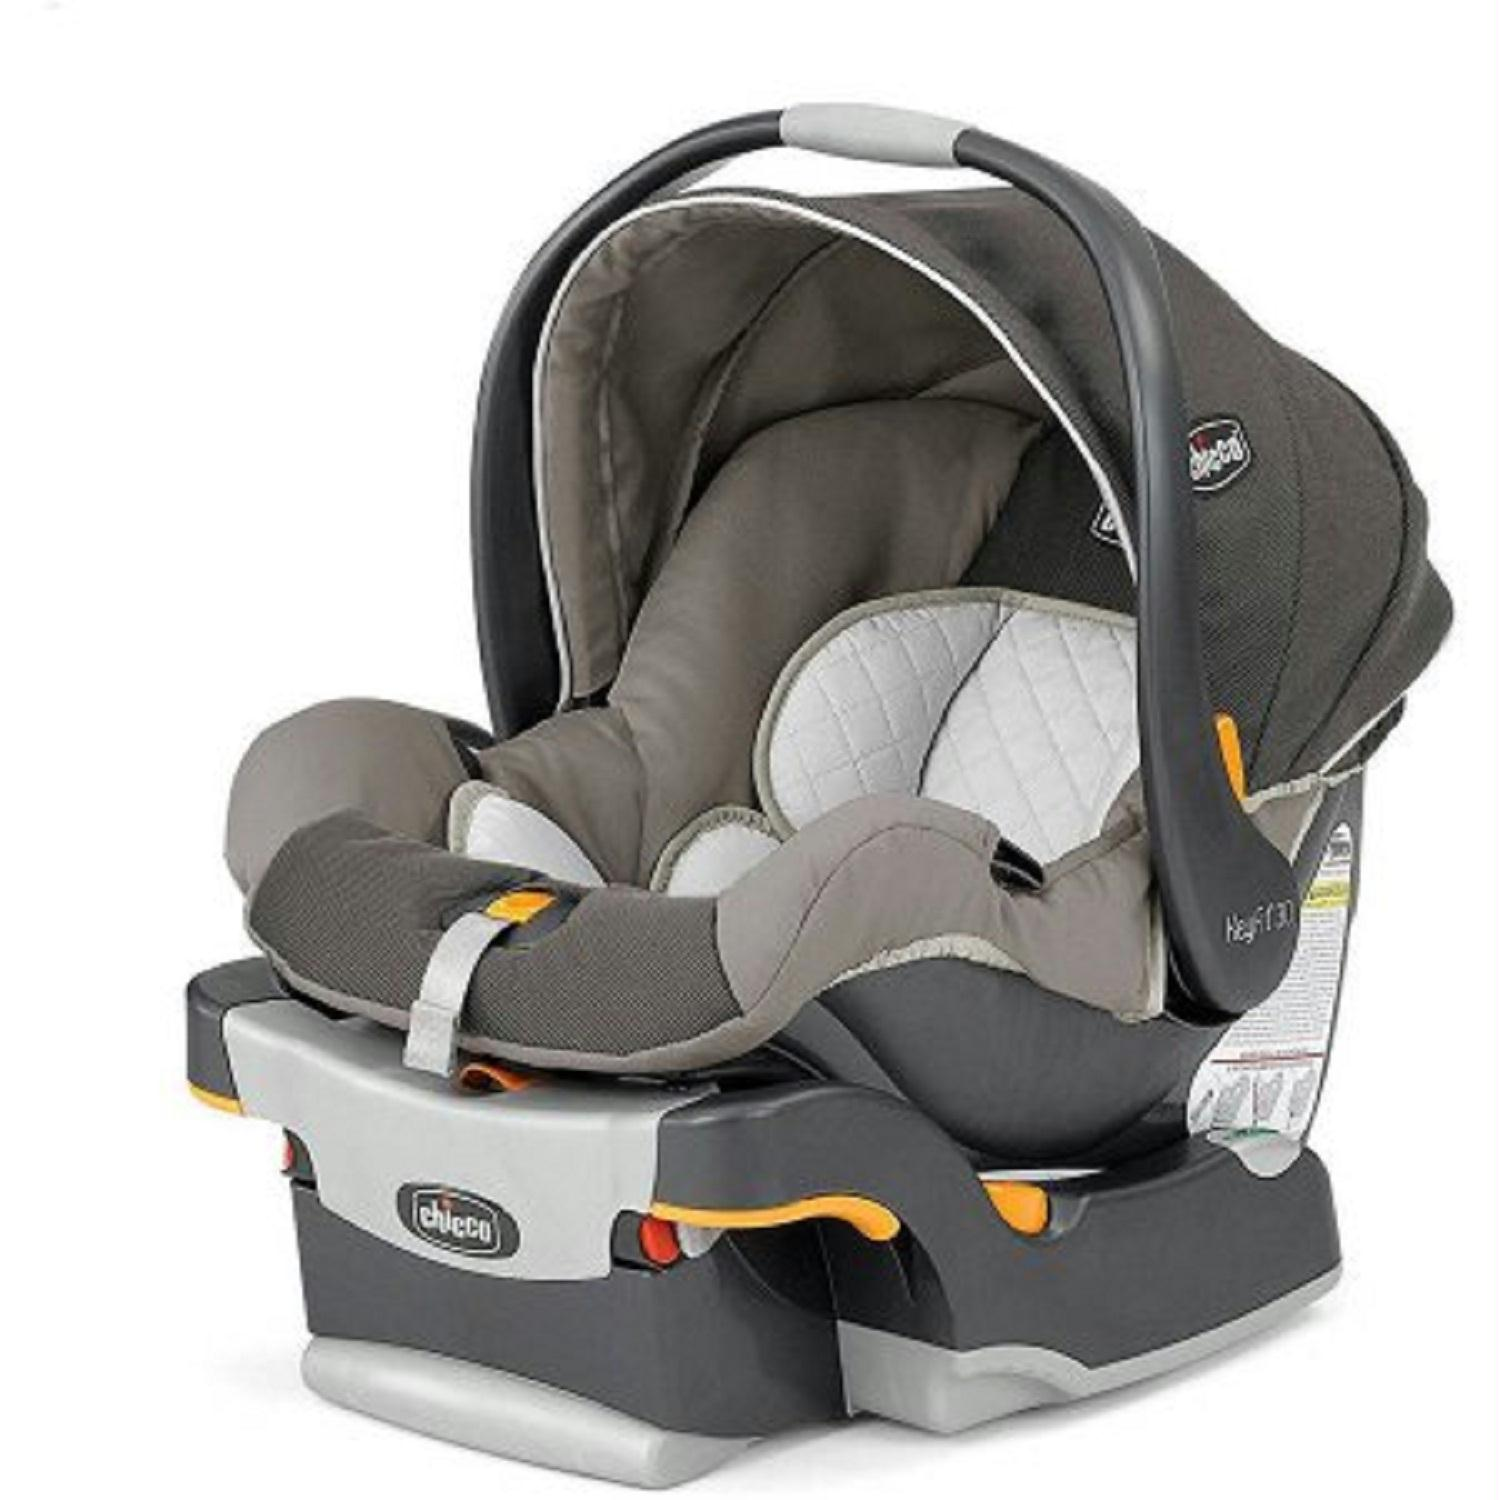 Chicco Keyfit 30 Infant Car Seat and Base, Choose Your Pattern